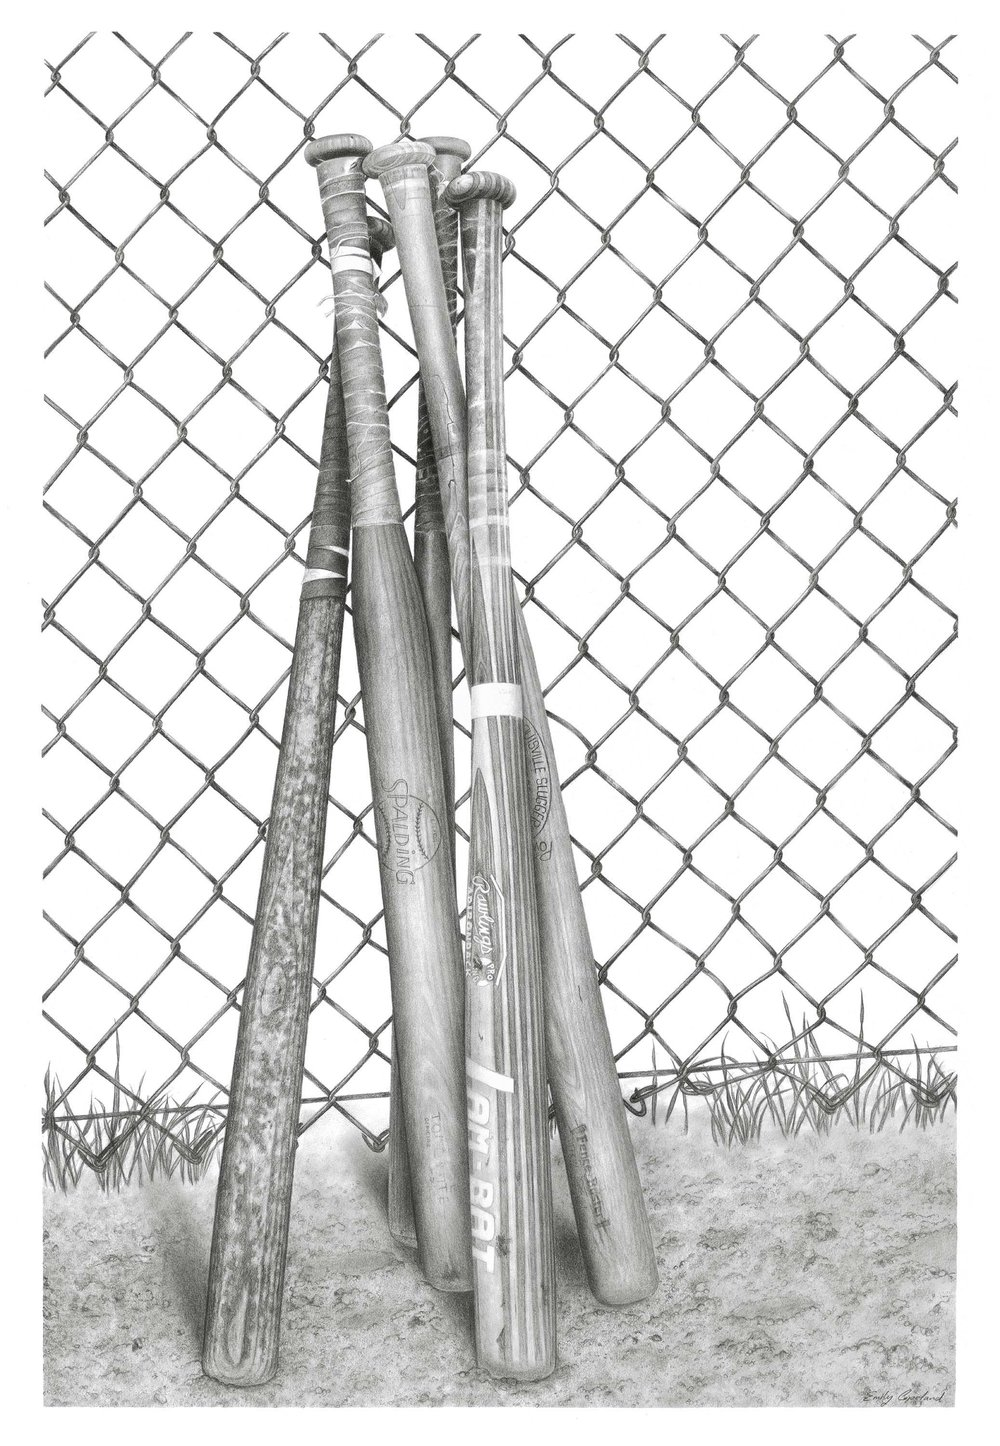 Charcoal Drawing of Vintage Baseball Bats